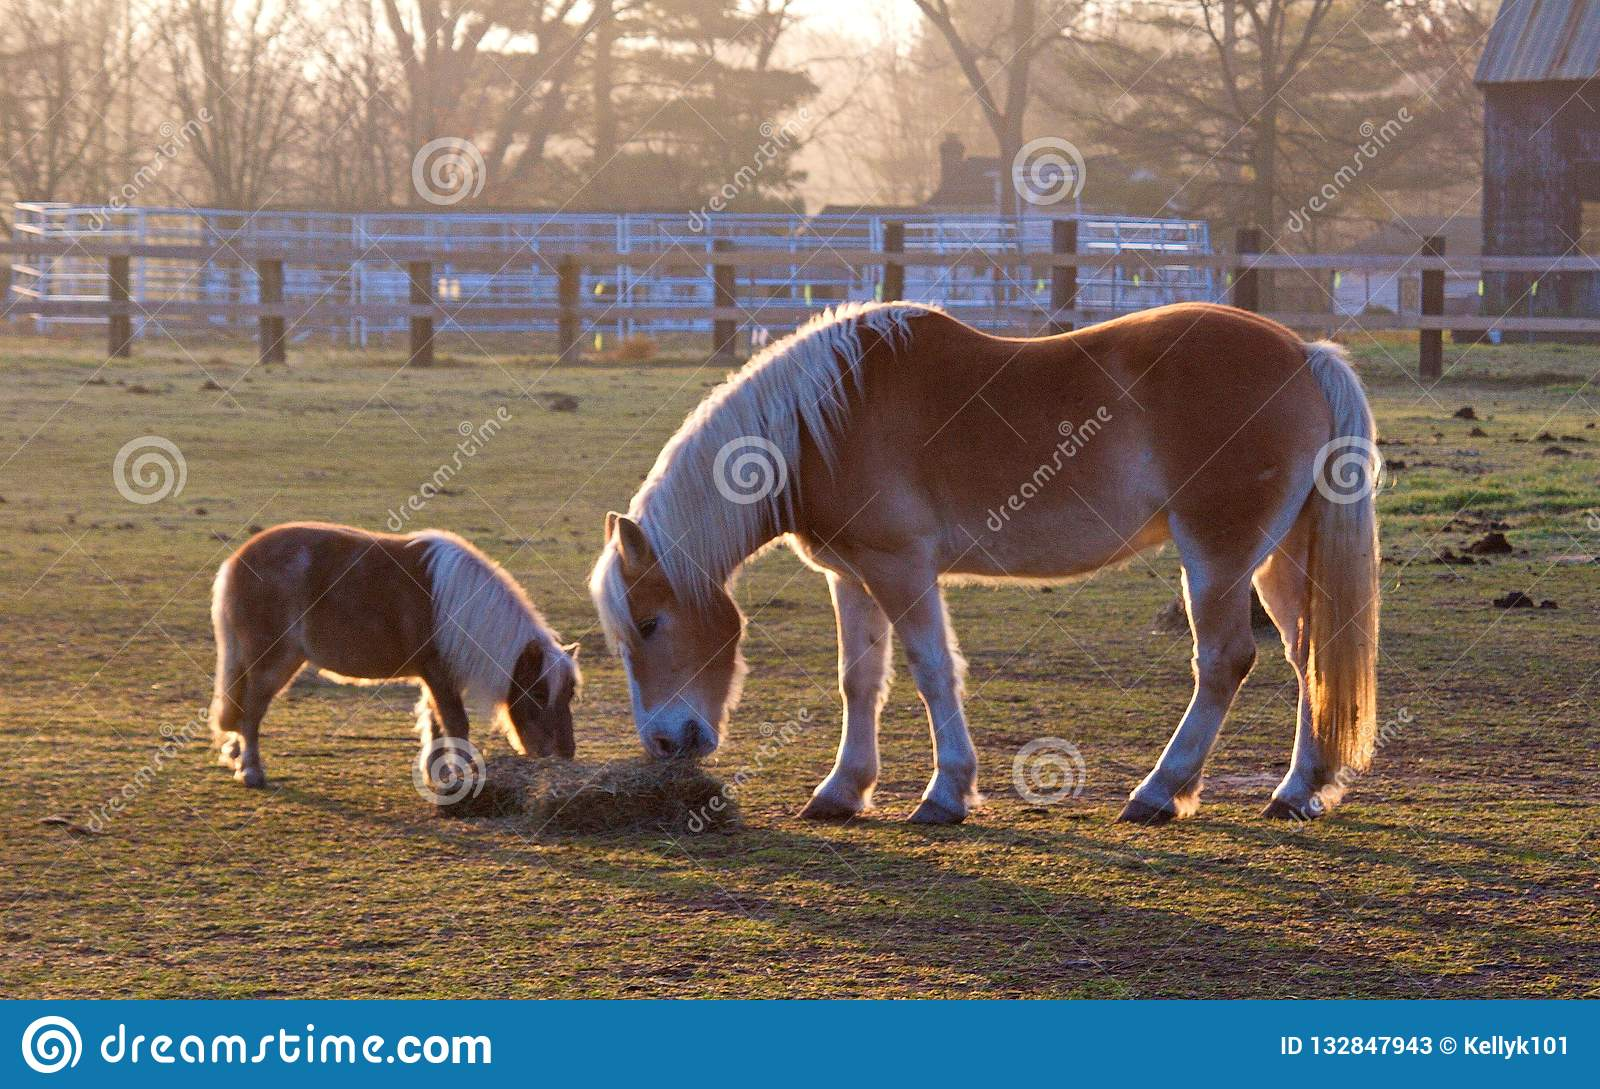 Mom And Baby Horse Eating Hay Stock Image Image Of Equine Nature 132847943